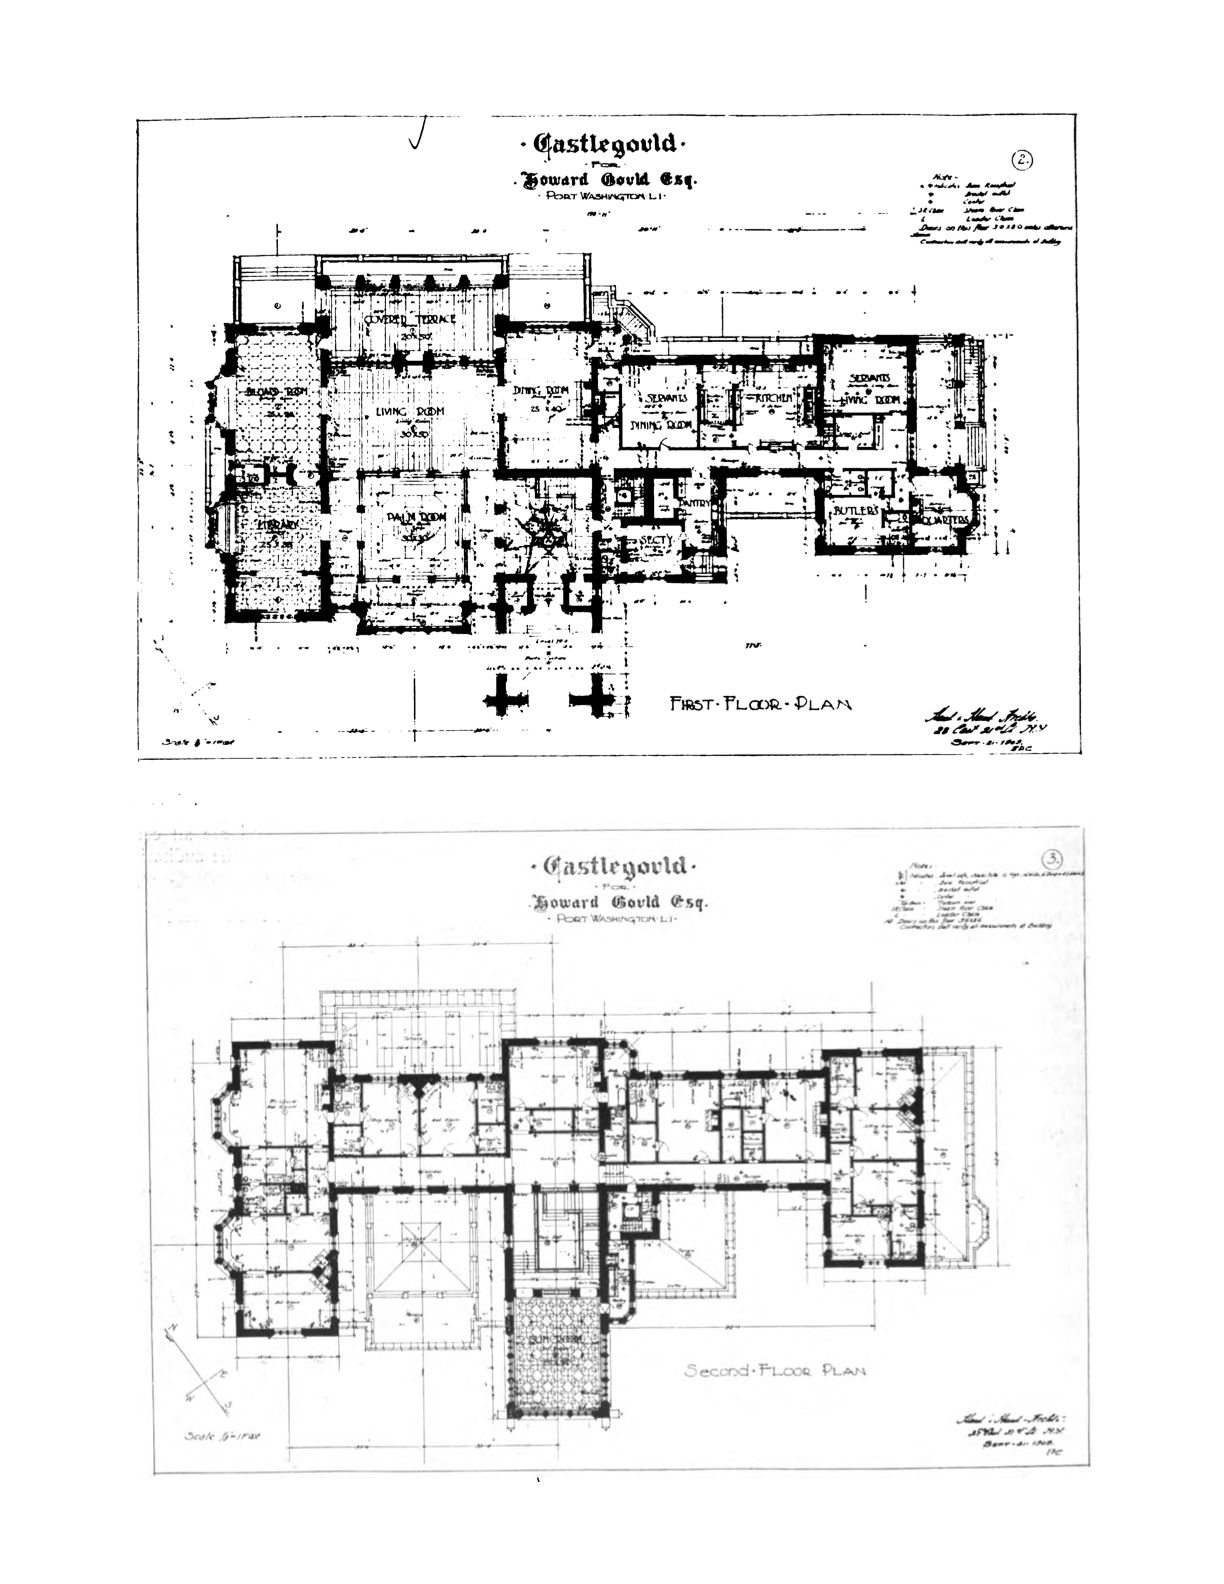 Old long island castlegould hempstead house · architectural floor plansarchitectural drawingsmansion